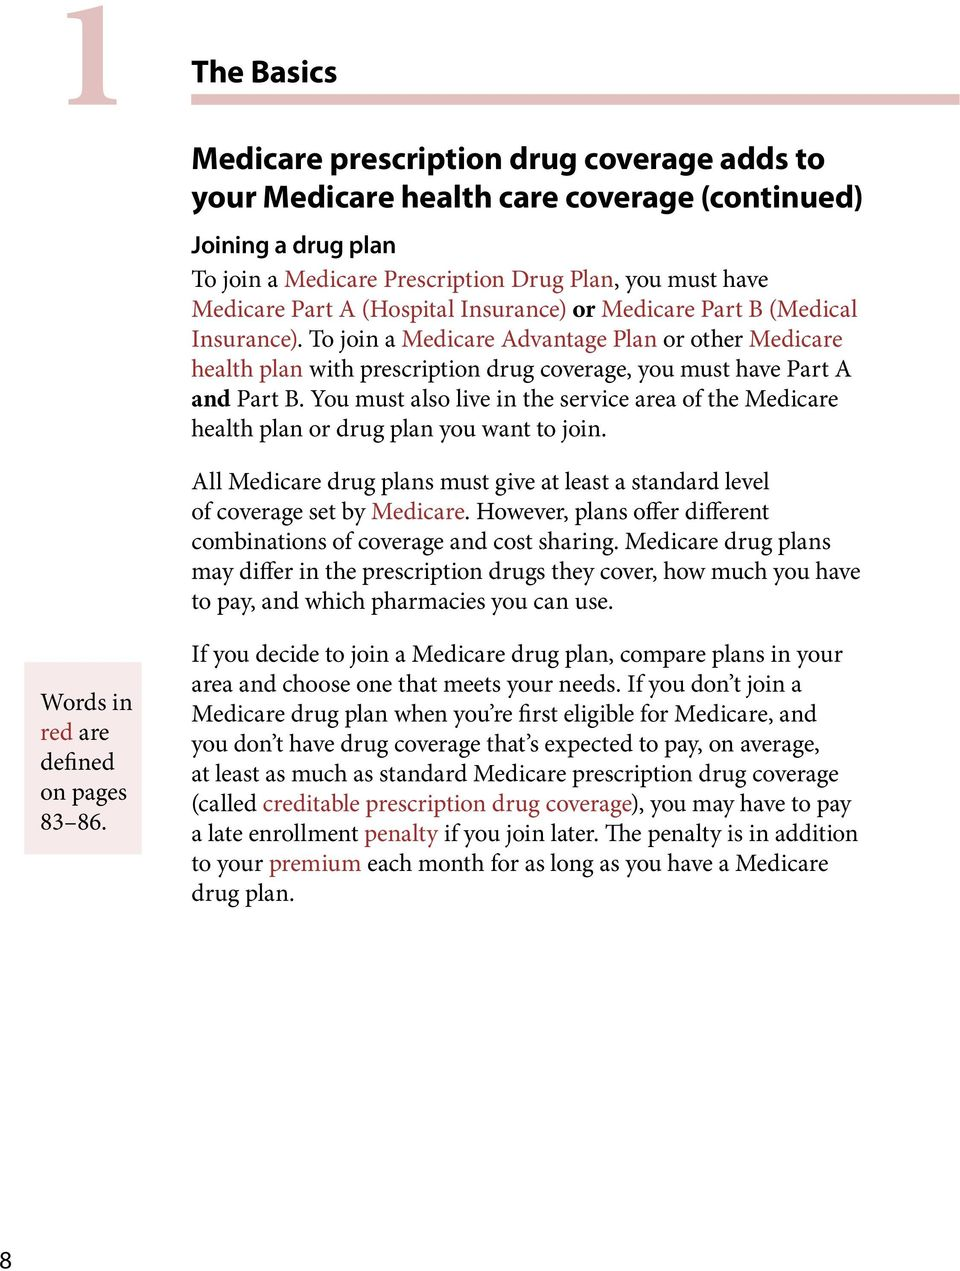 You must also live in the service area of the Medicare health plan or drug plan you want to join. All Medicare drug plans must give at least a standard level of coverage set by Medicare.